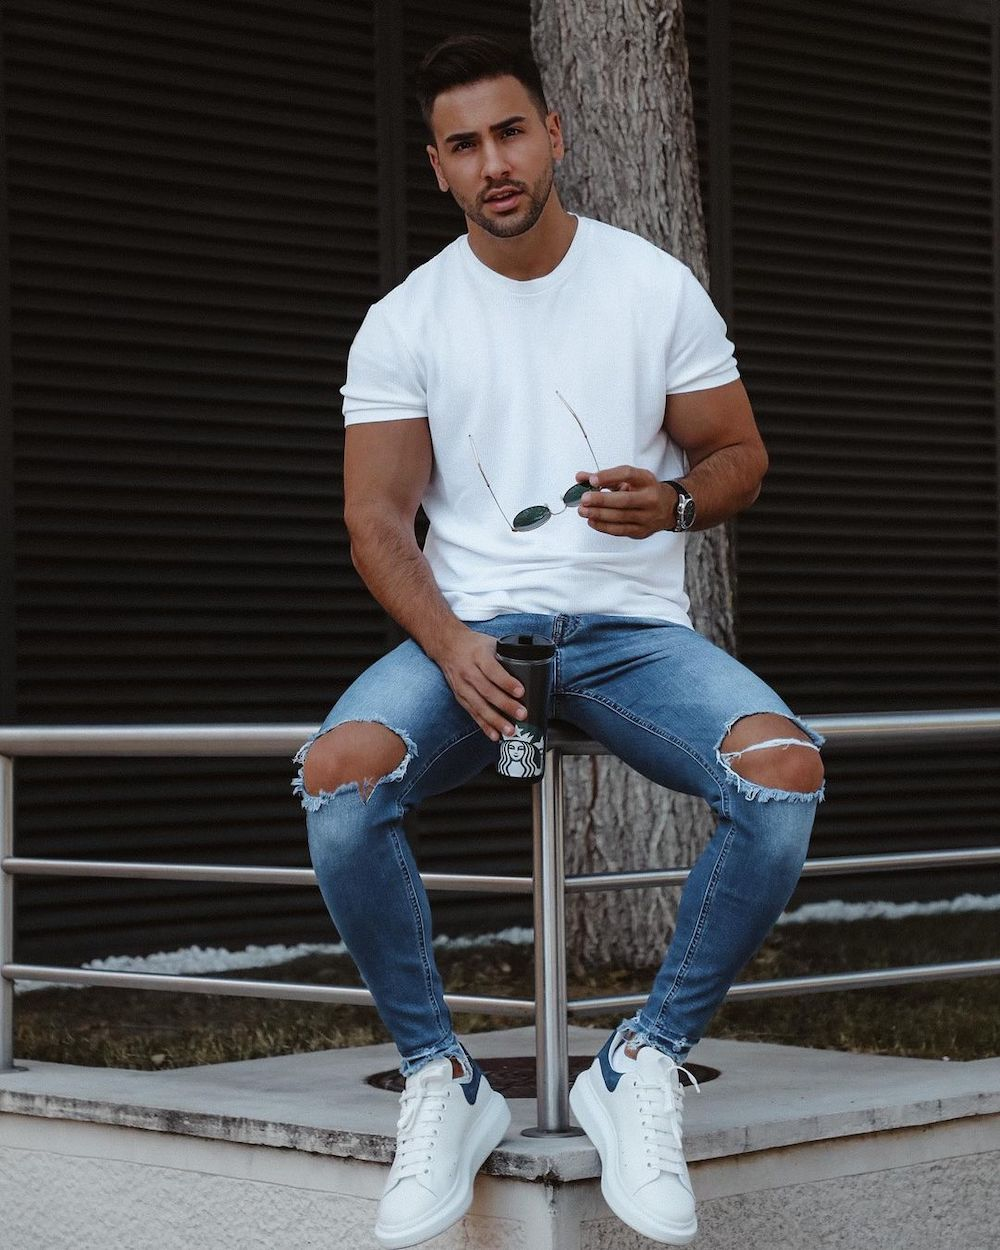 Simple and flawless - white shirt and blue ripped jeans